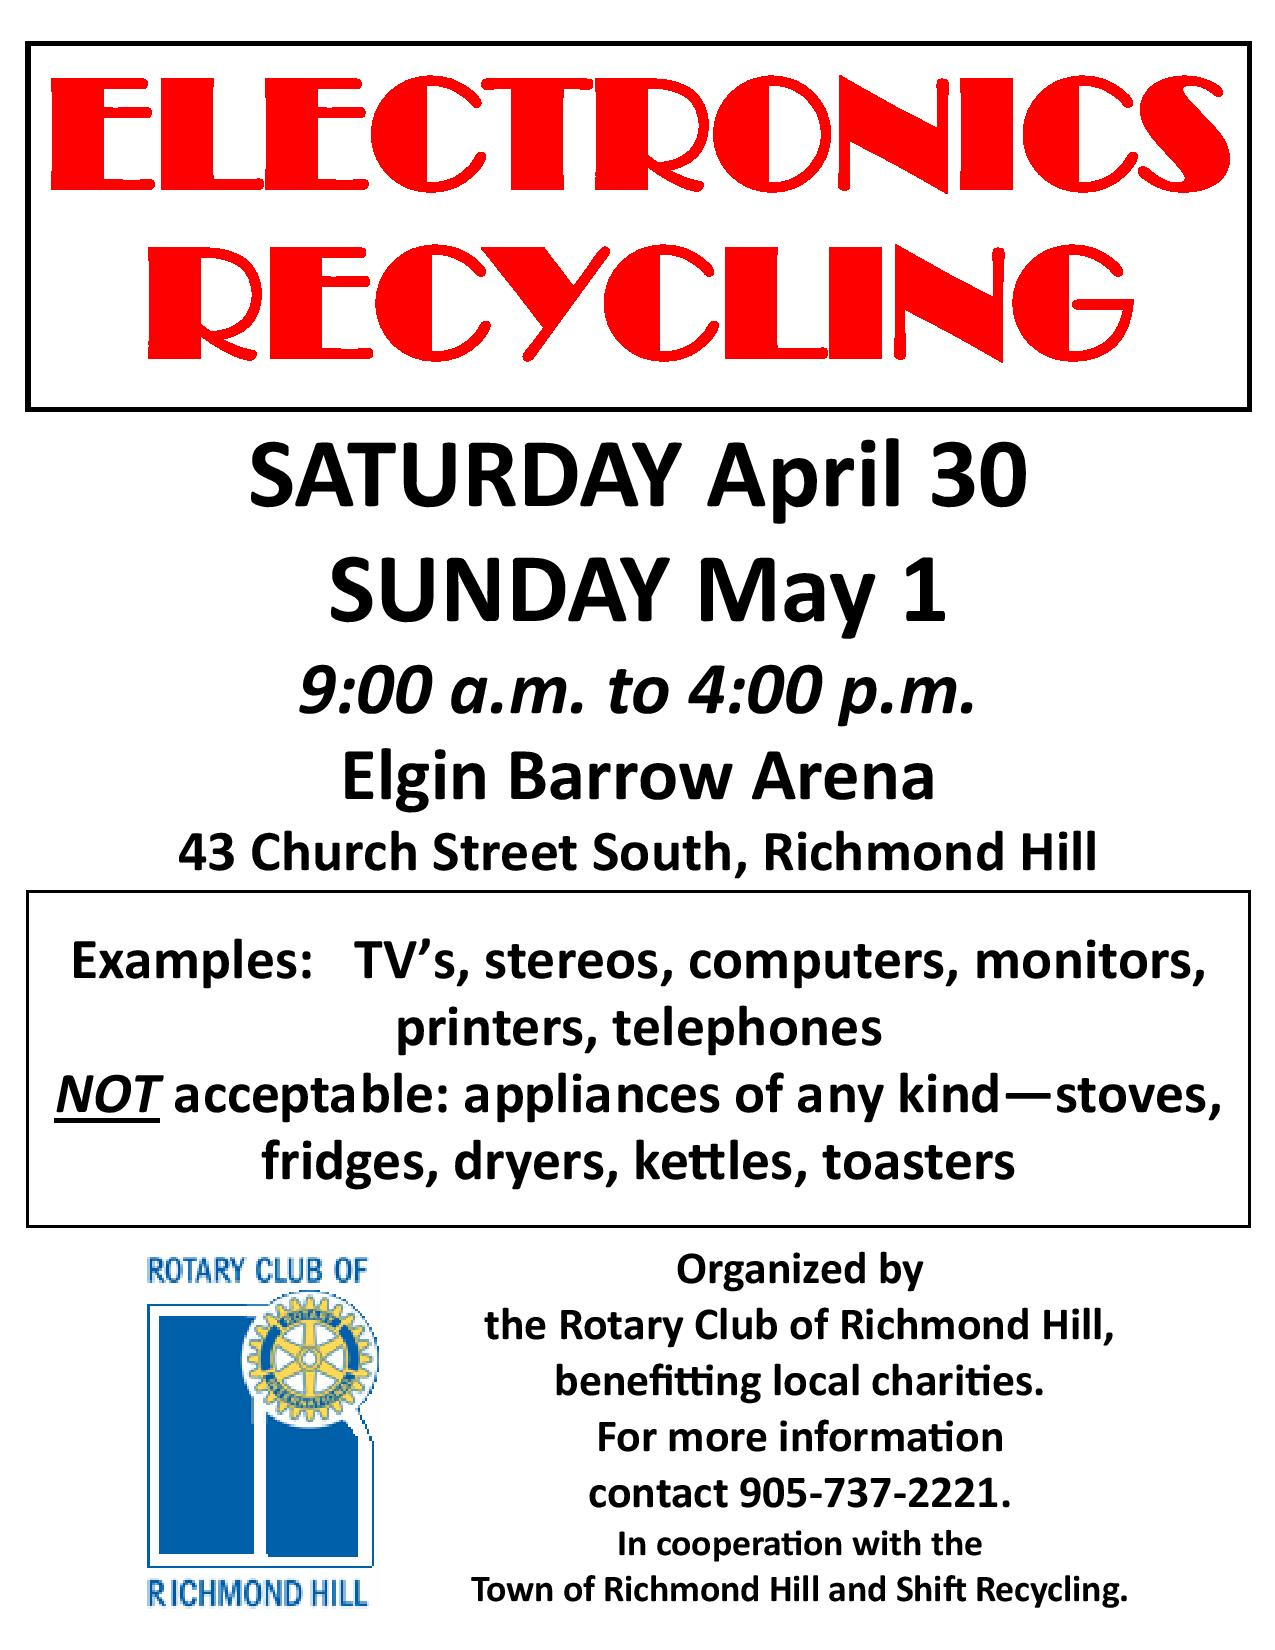 Electronics Recycling Fundraiser for Rotary